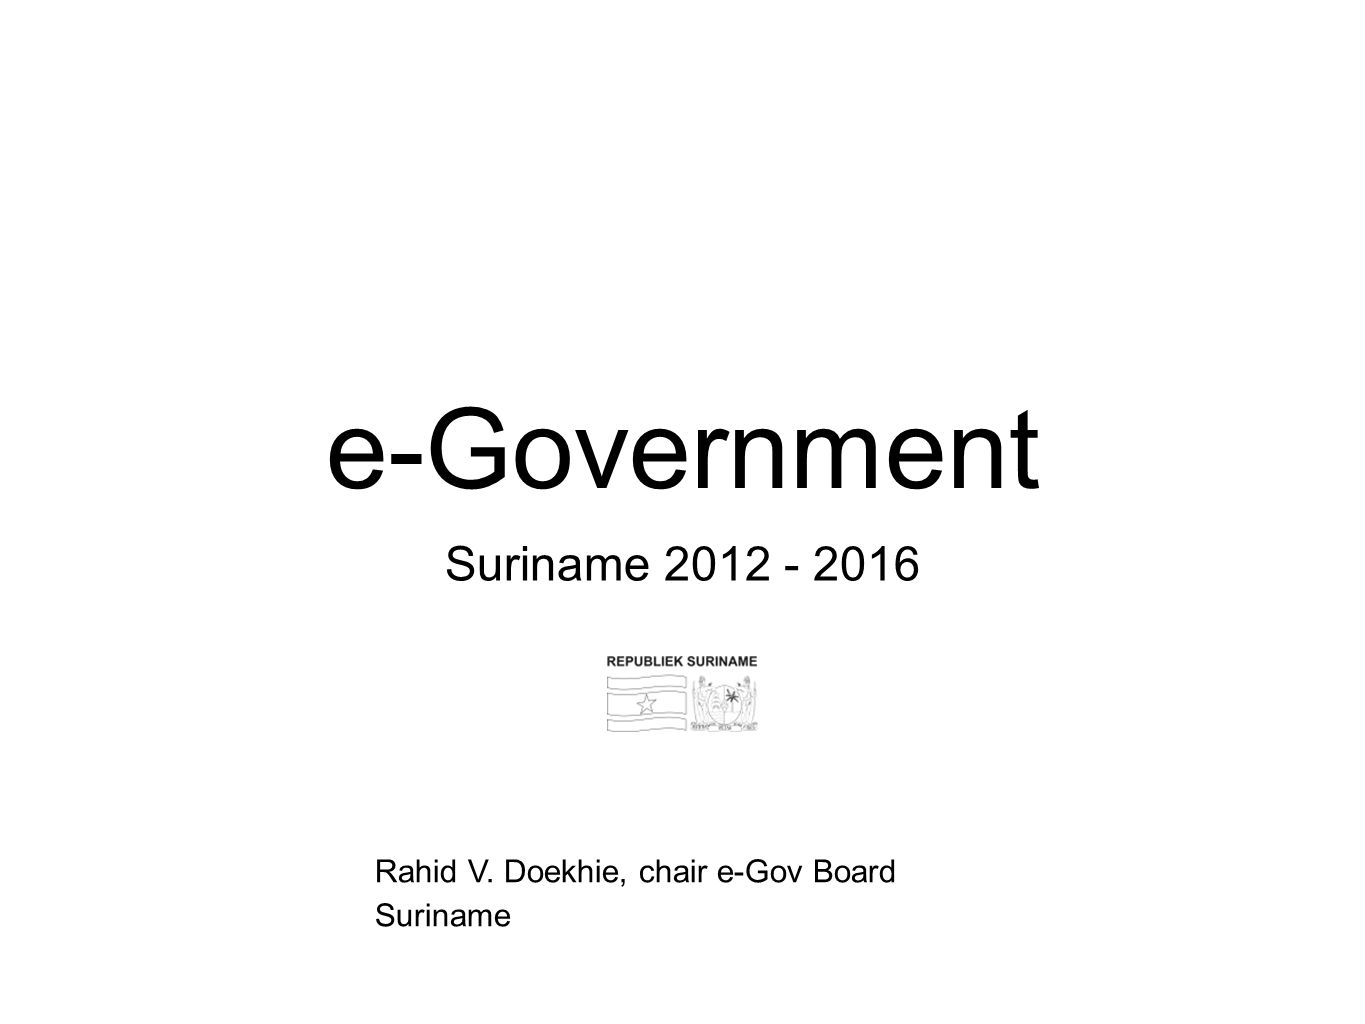 e-Government Suriname 2012 - 2016